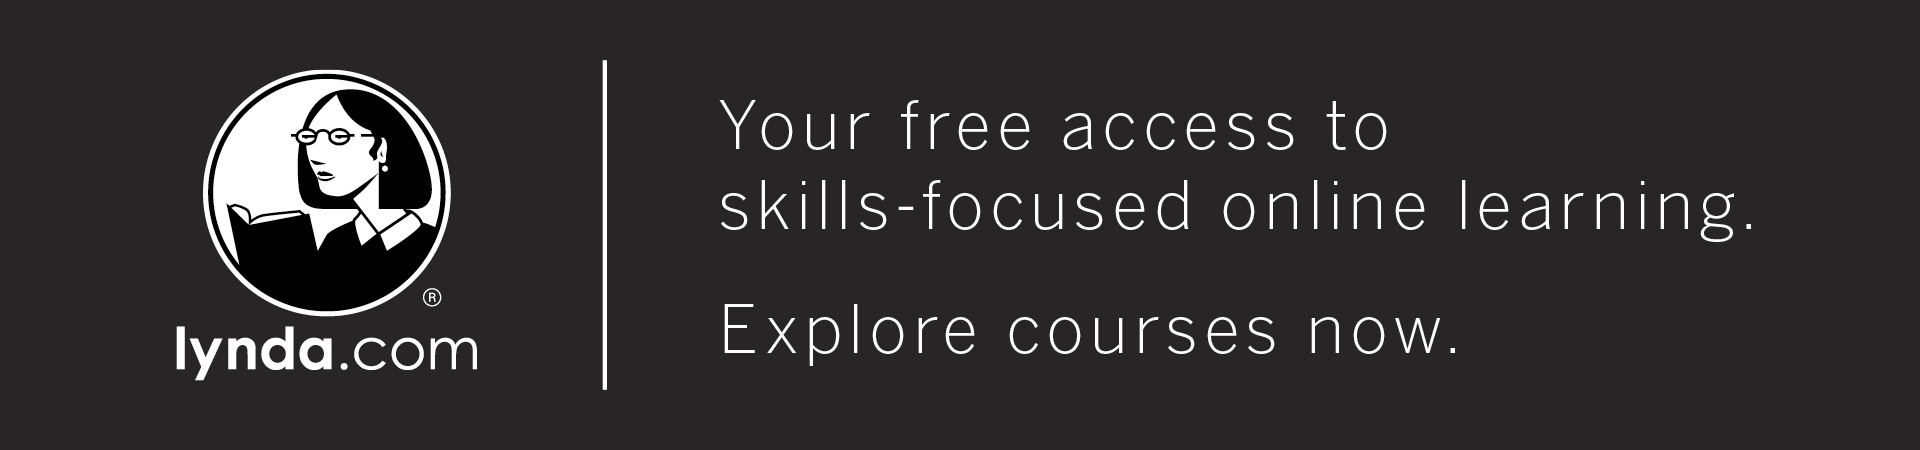 Lynda.com at Western: Your free access to skill-focused online learning